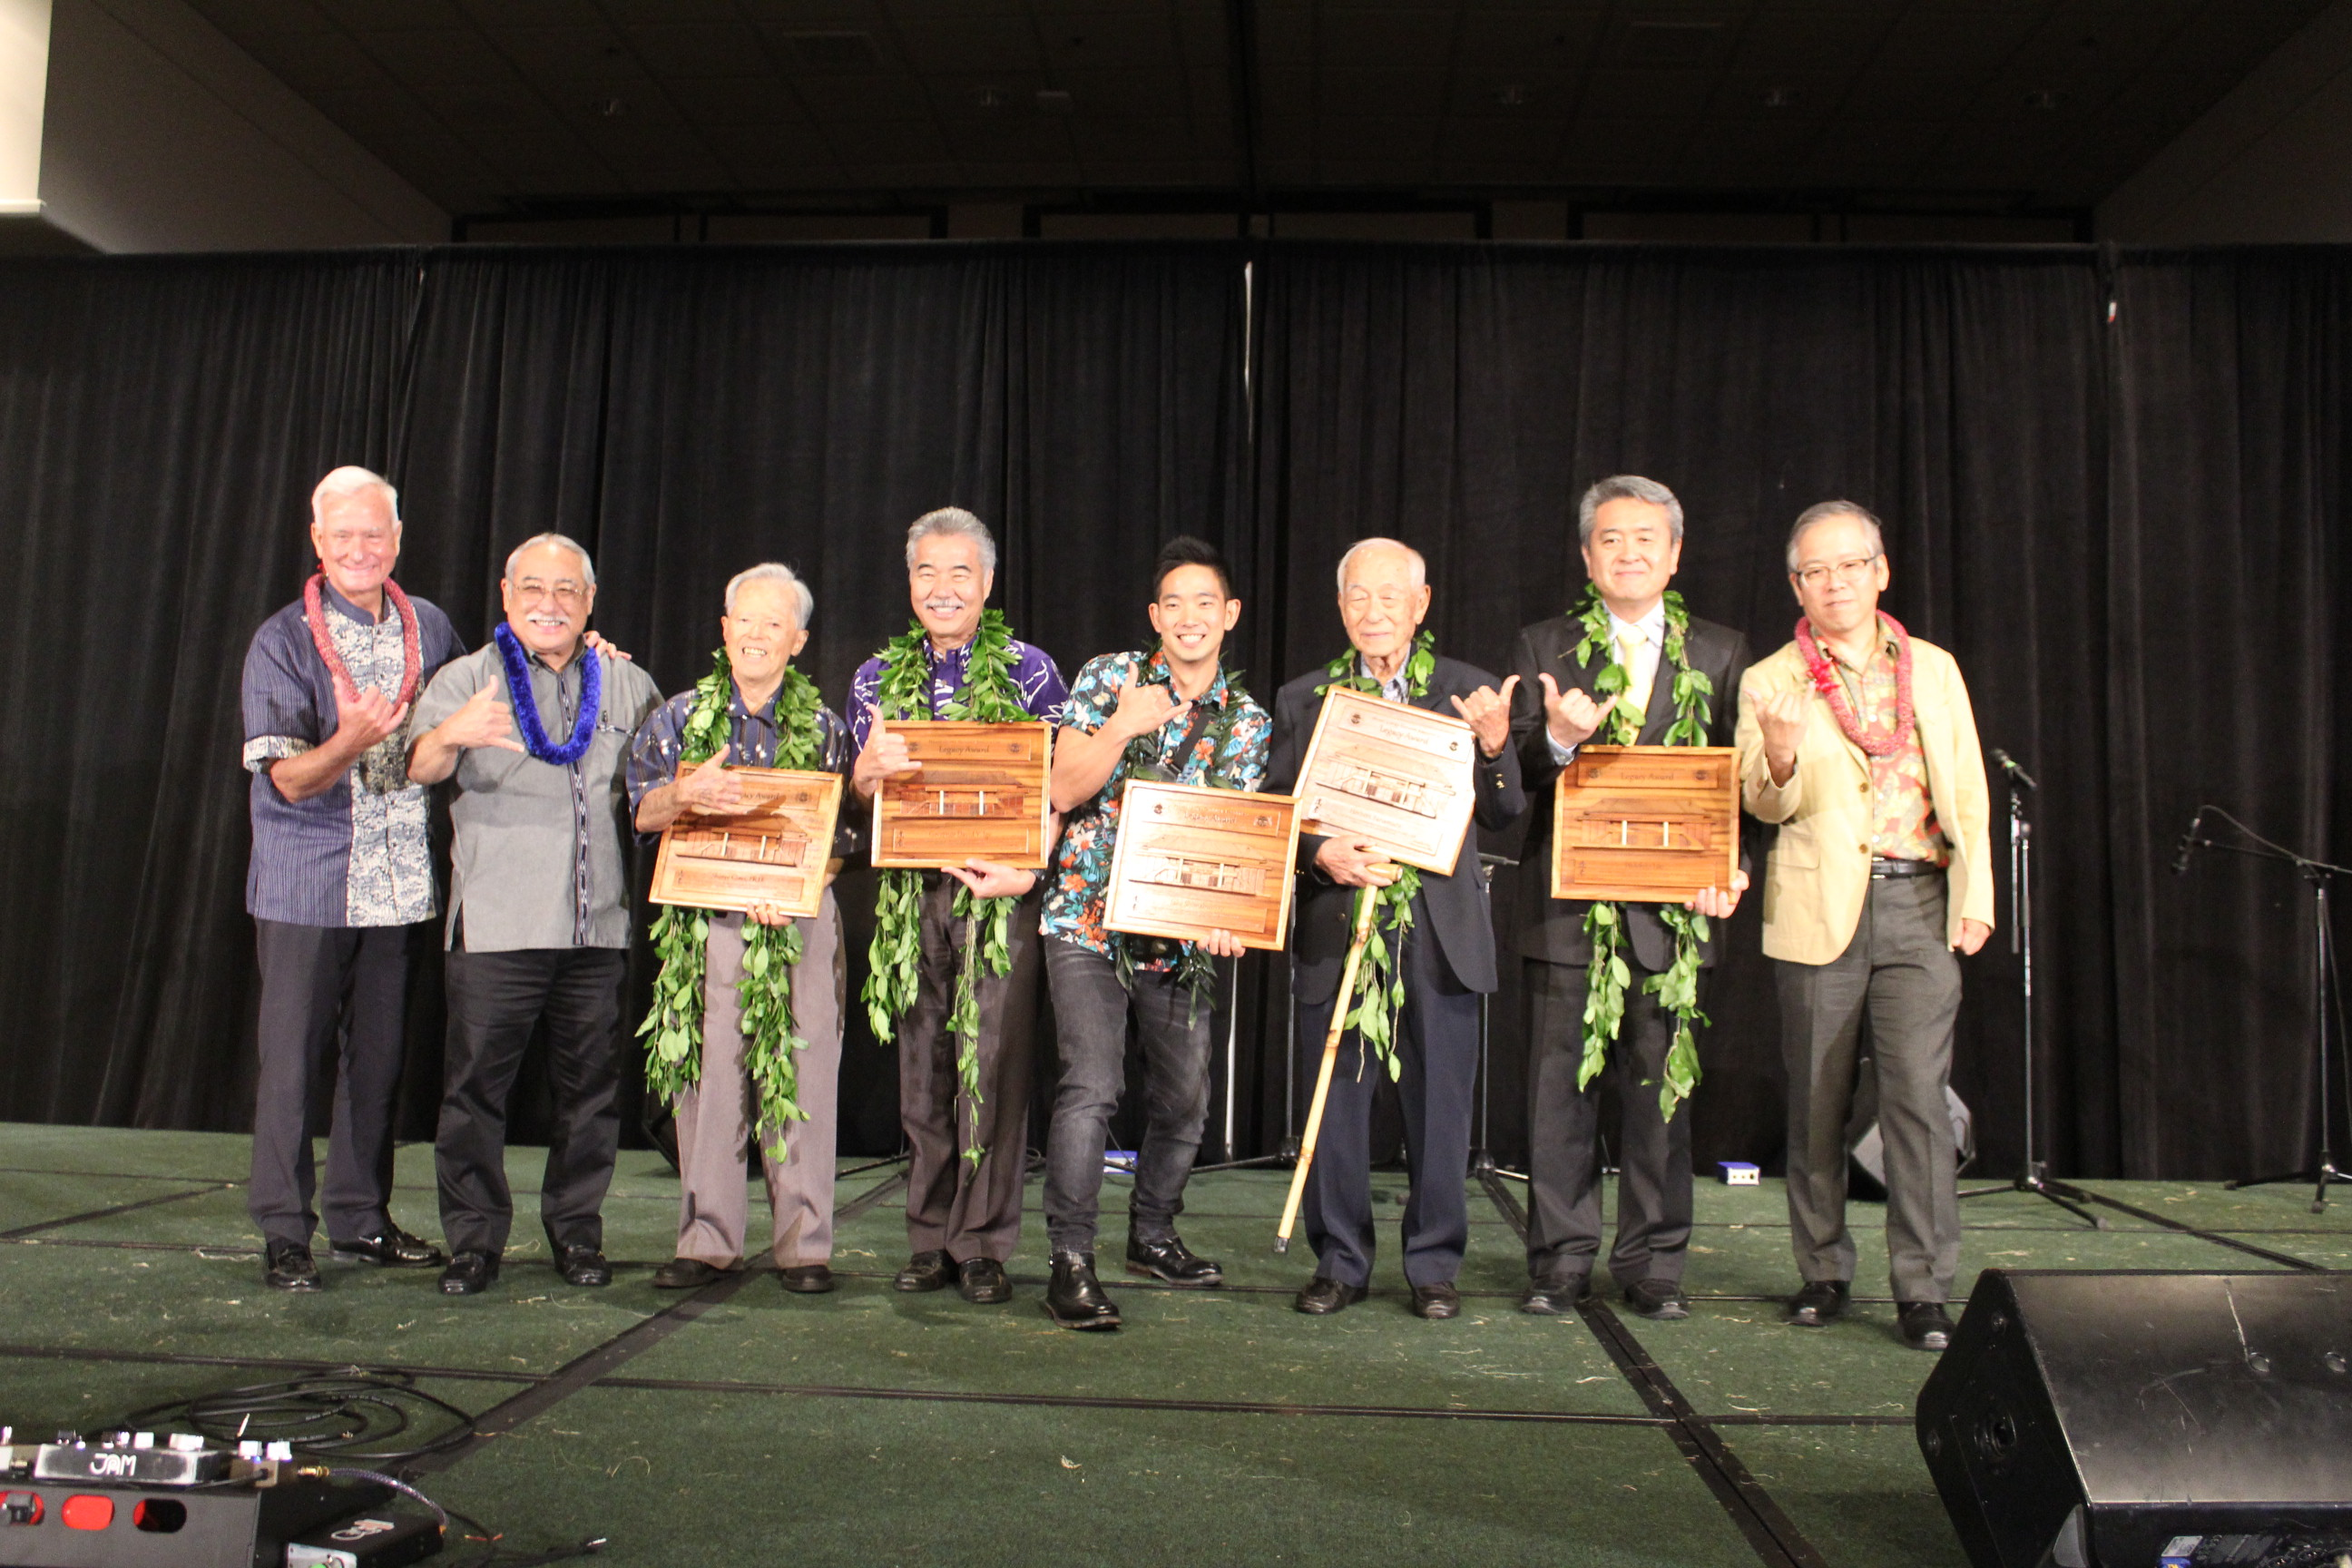 Group photo of the 2017 HUOA Legacy Award honorees